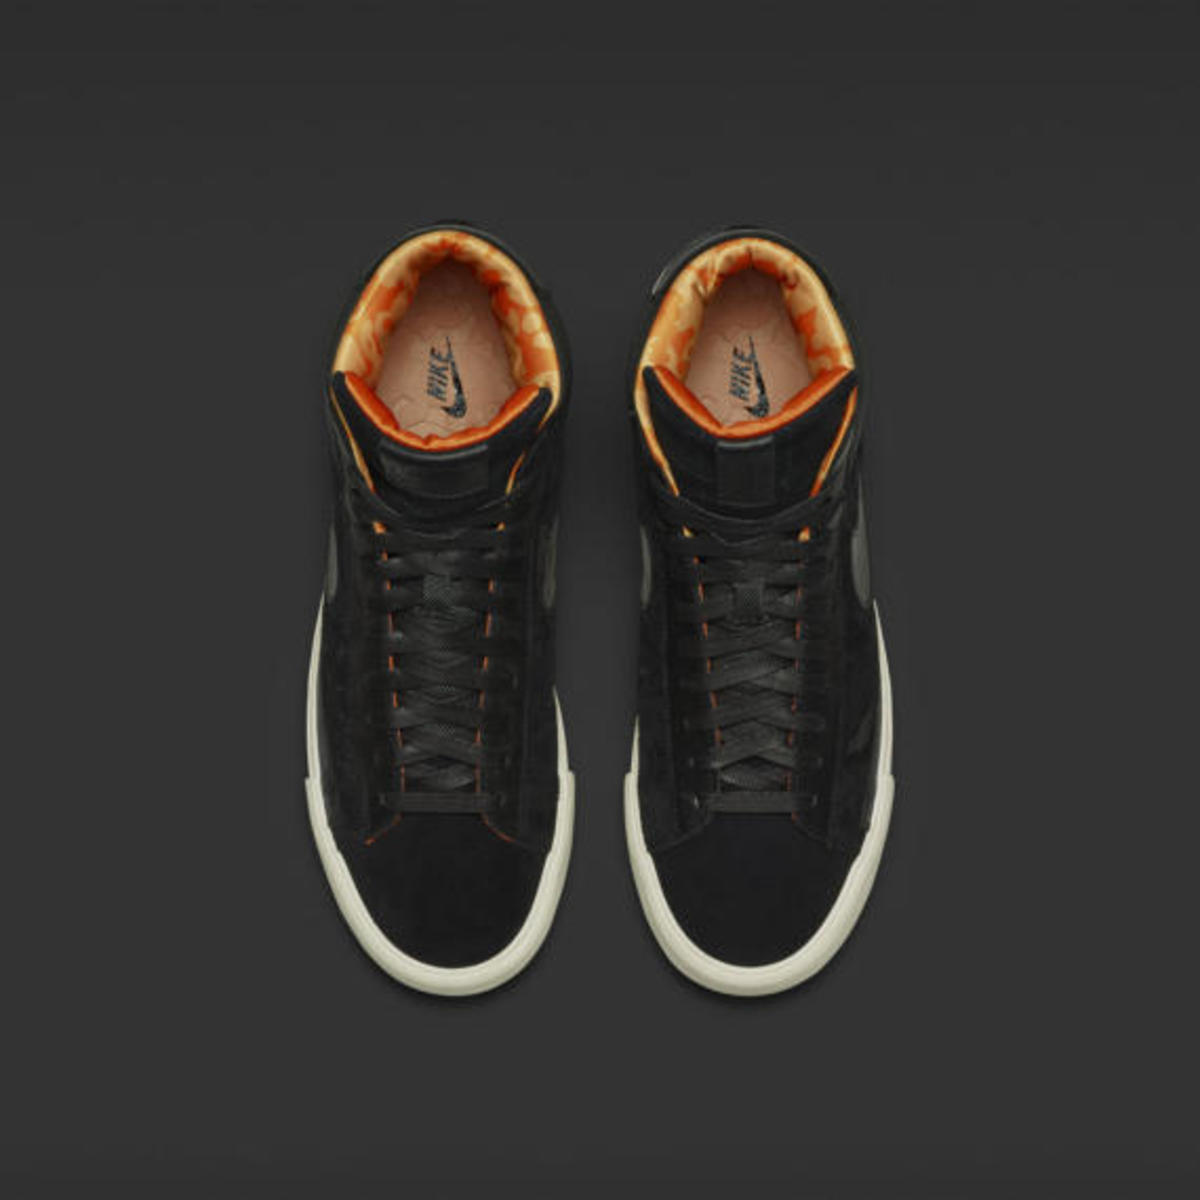 nike-mo-wax-by-james-lavelle-capsule-release-info-07